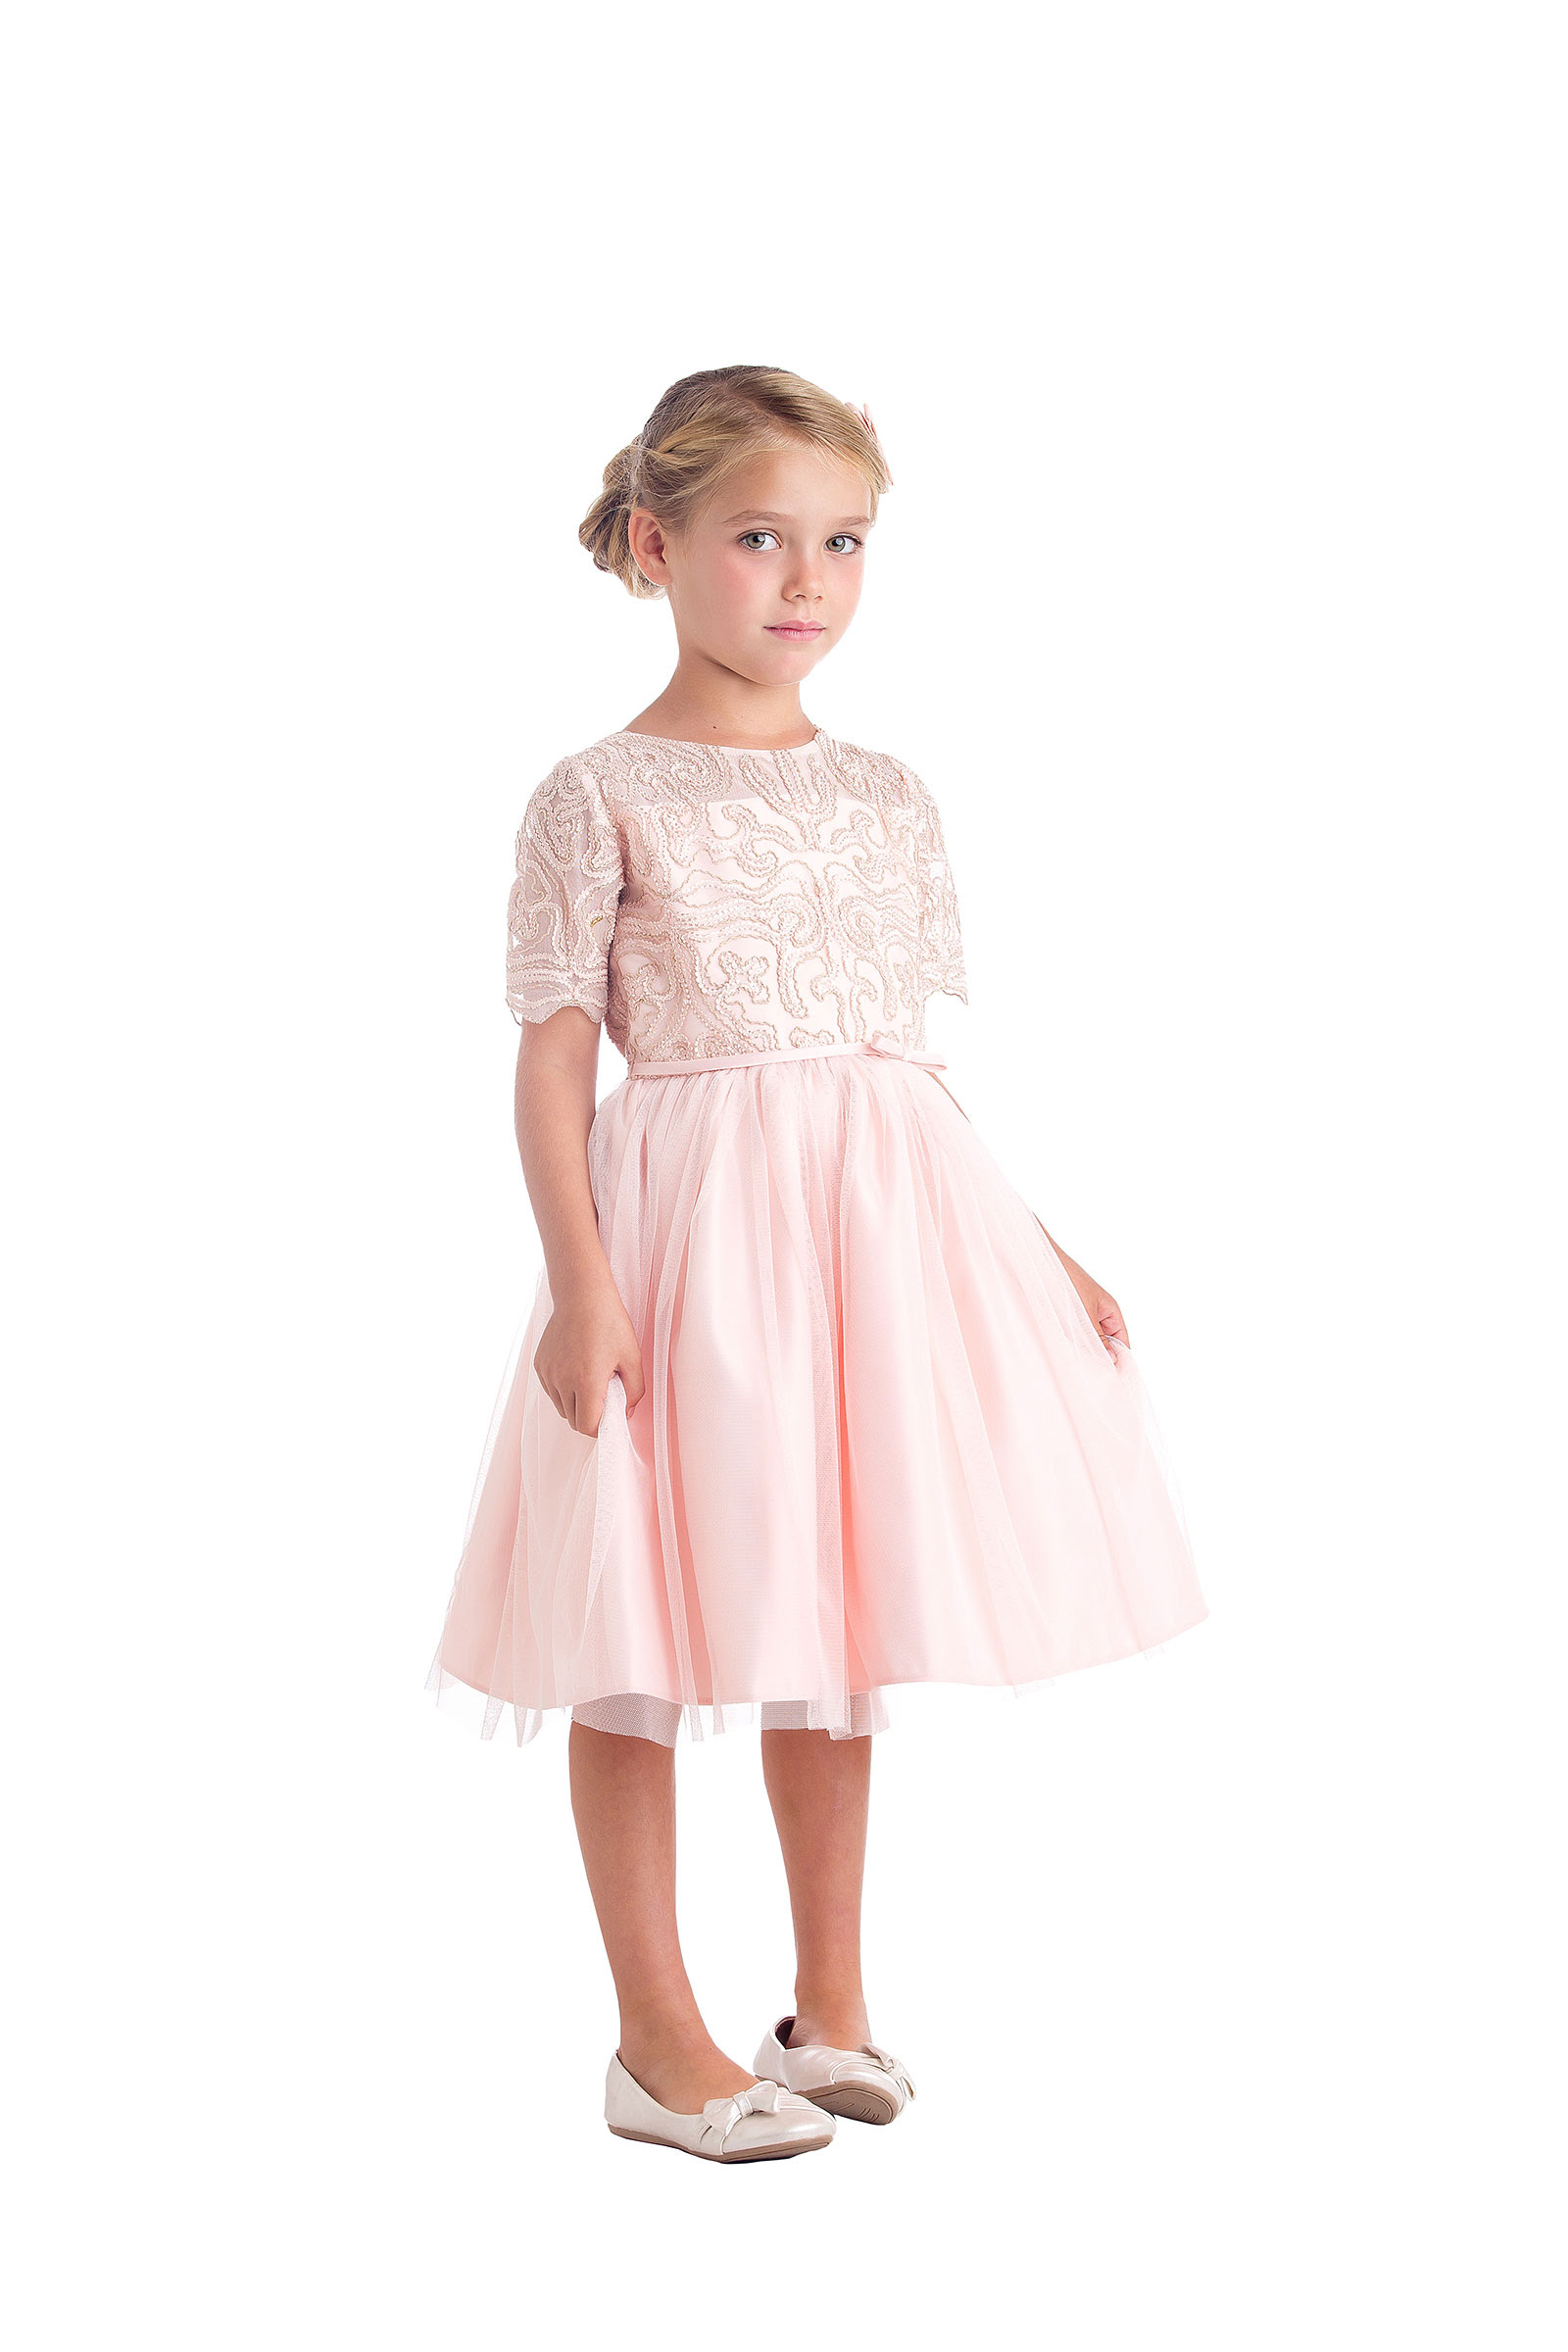 sk693p  girls dress style 693  short sleeve corded